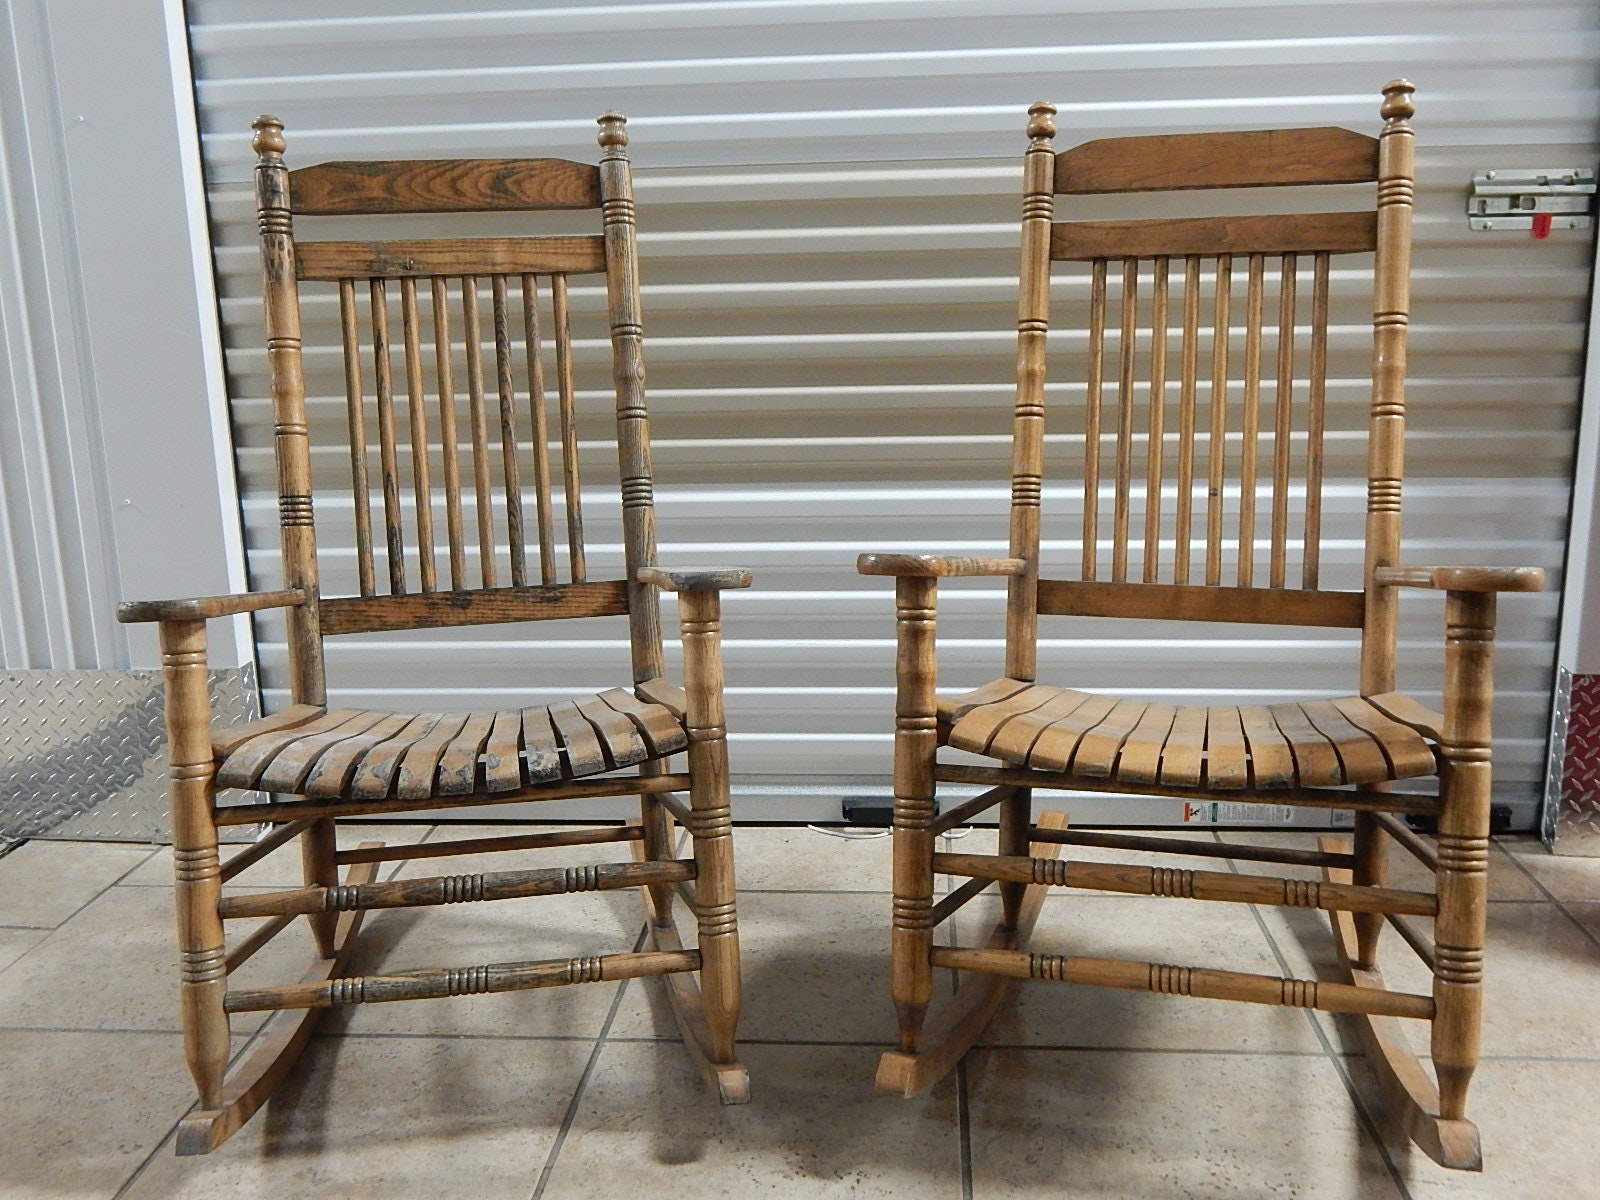 Two Vintage Cracker Barrel Rocking Chairs ... : two rocking chairs - Cheerinfomania.Com